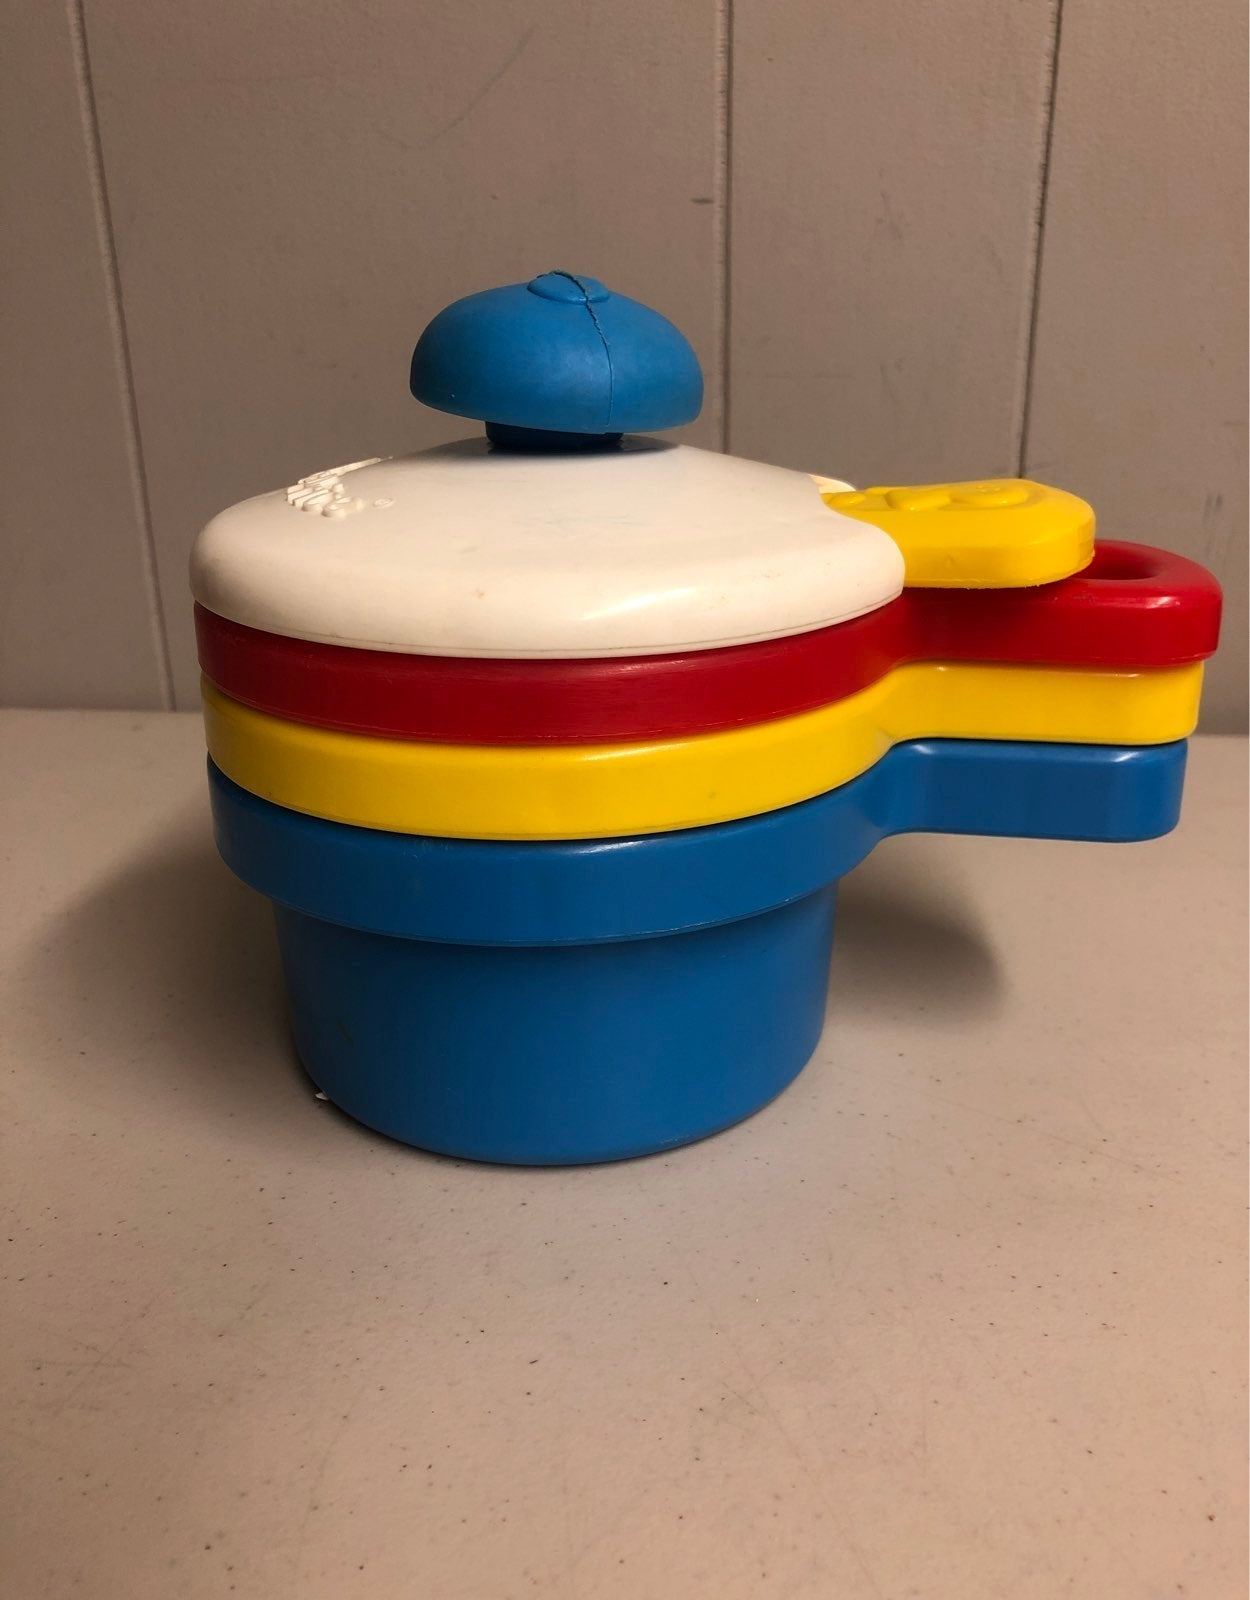 Fisher-Price stacking pots